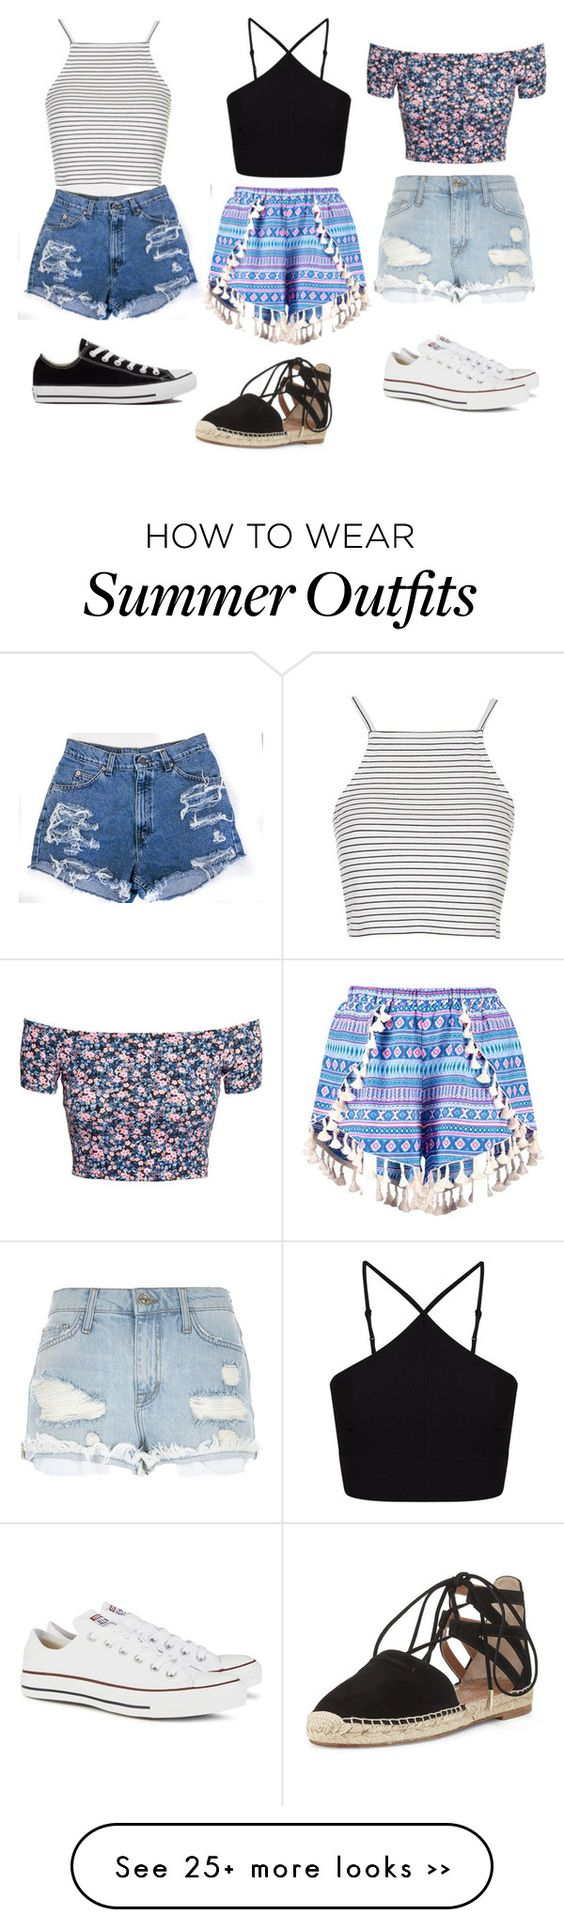 """""""Summer outfits """" by skyscraper1432 on Polyvore"""